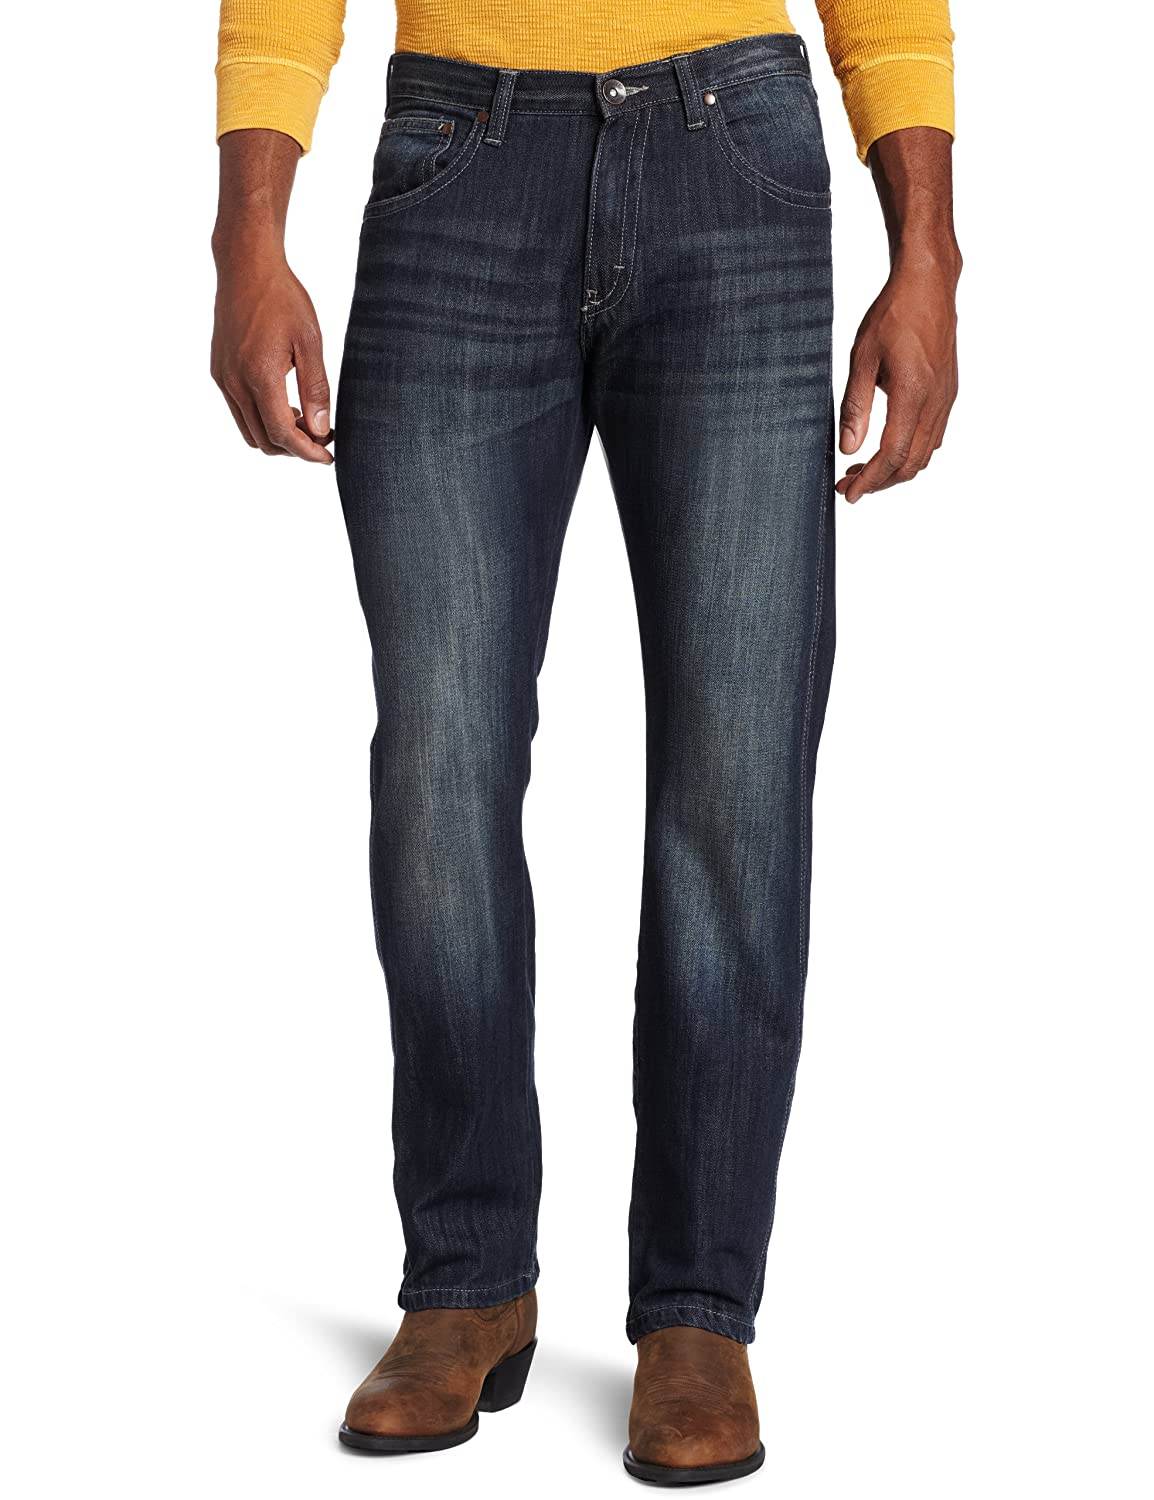 Wrangler Mens Retro Slim Fit Straight Leg Jean